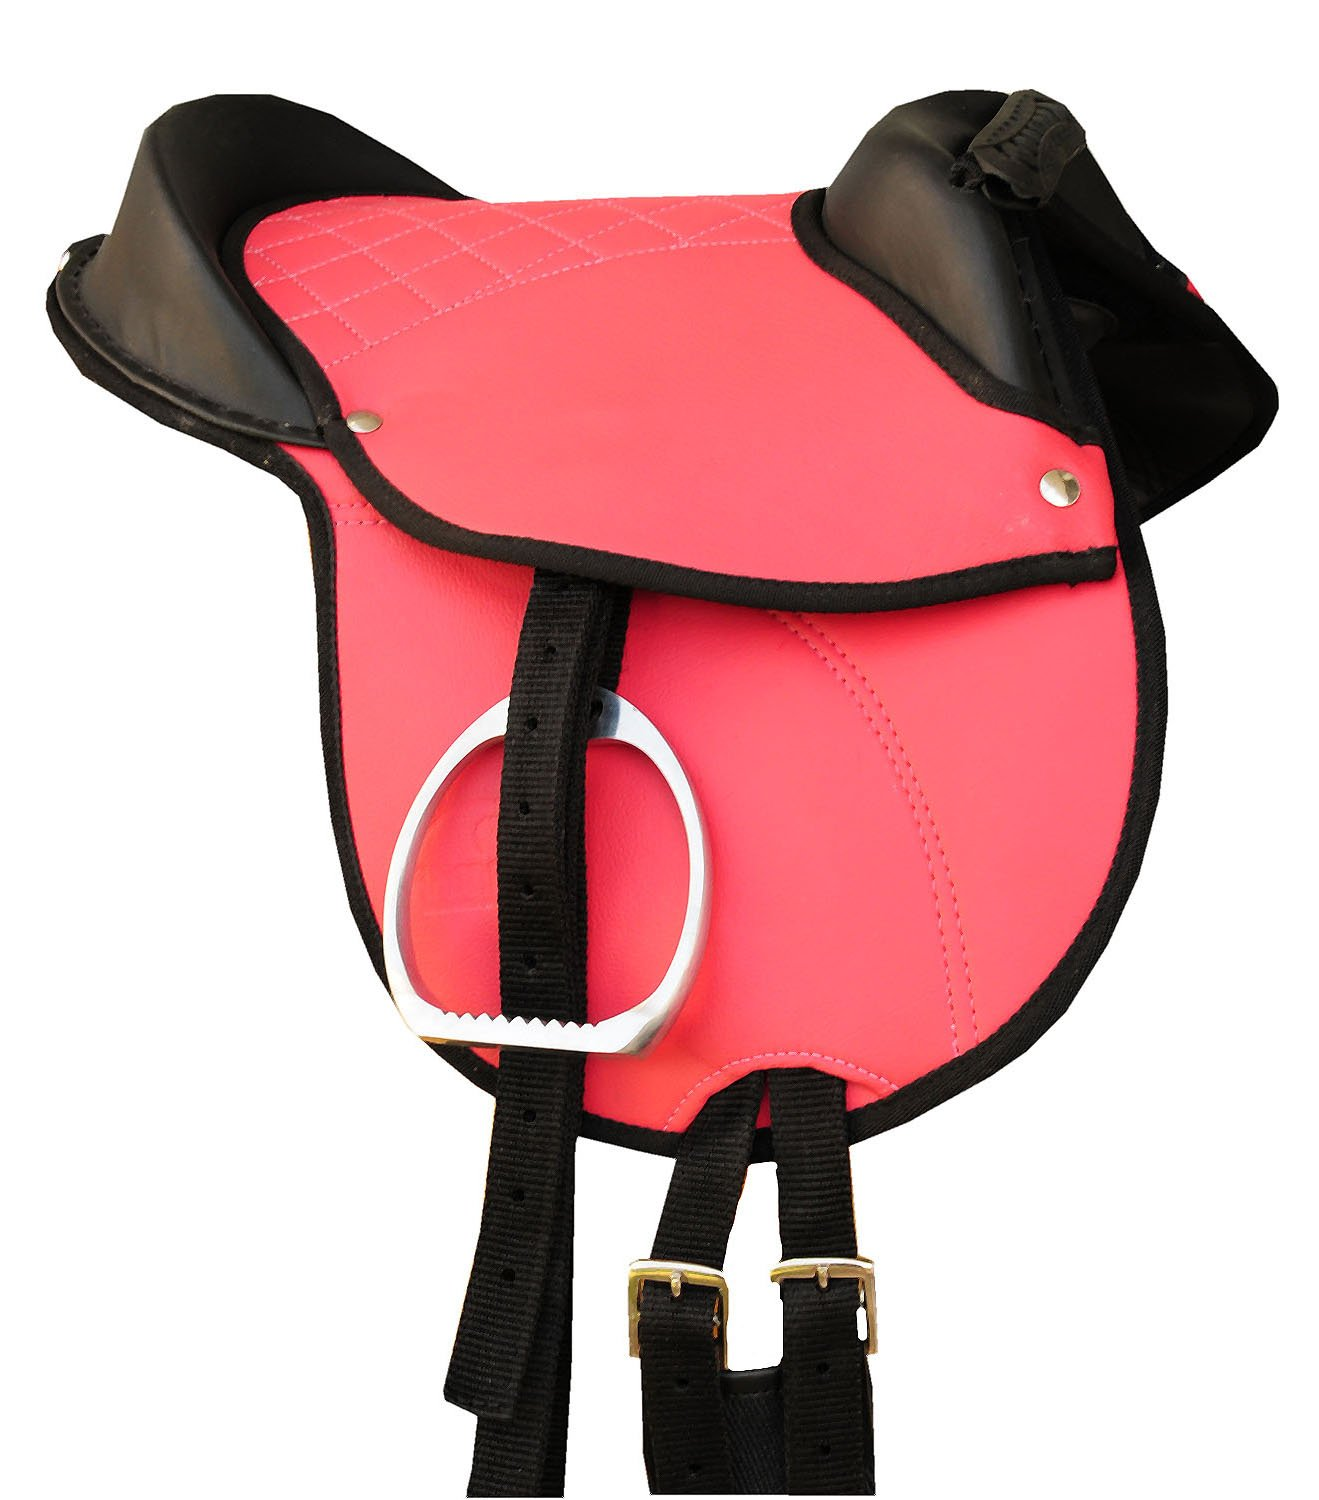 'Horse saddle Shetland Pony Hide Covered Pony Pad Saddle Pony Riding Cushion with Accessory Complete Set Matching Pink 10 | Pony Saddle Set Suitable Reitpad also for Wood Horses Cub Saddle Set Reitsport Amesbichler